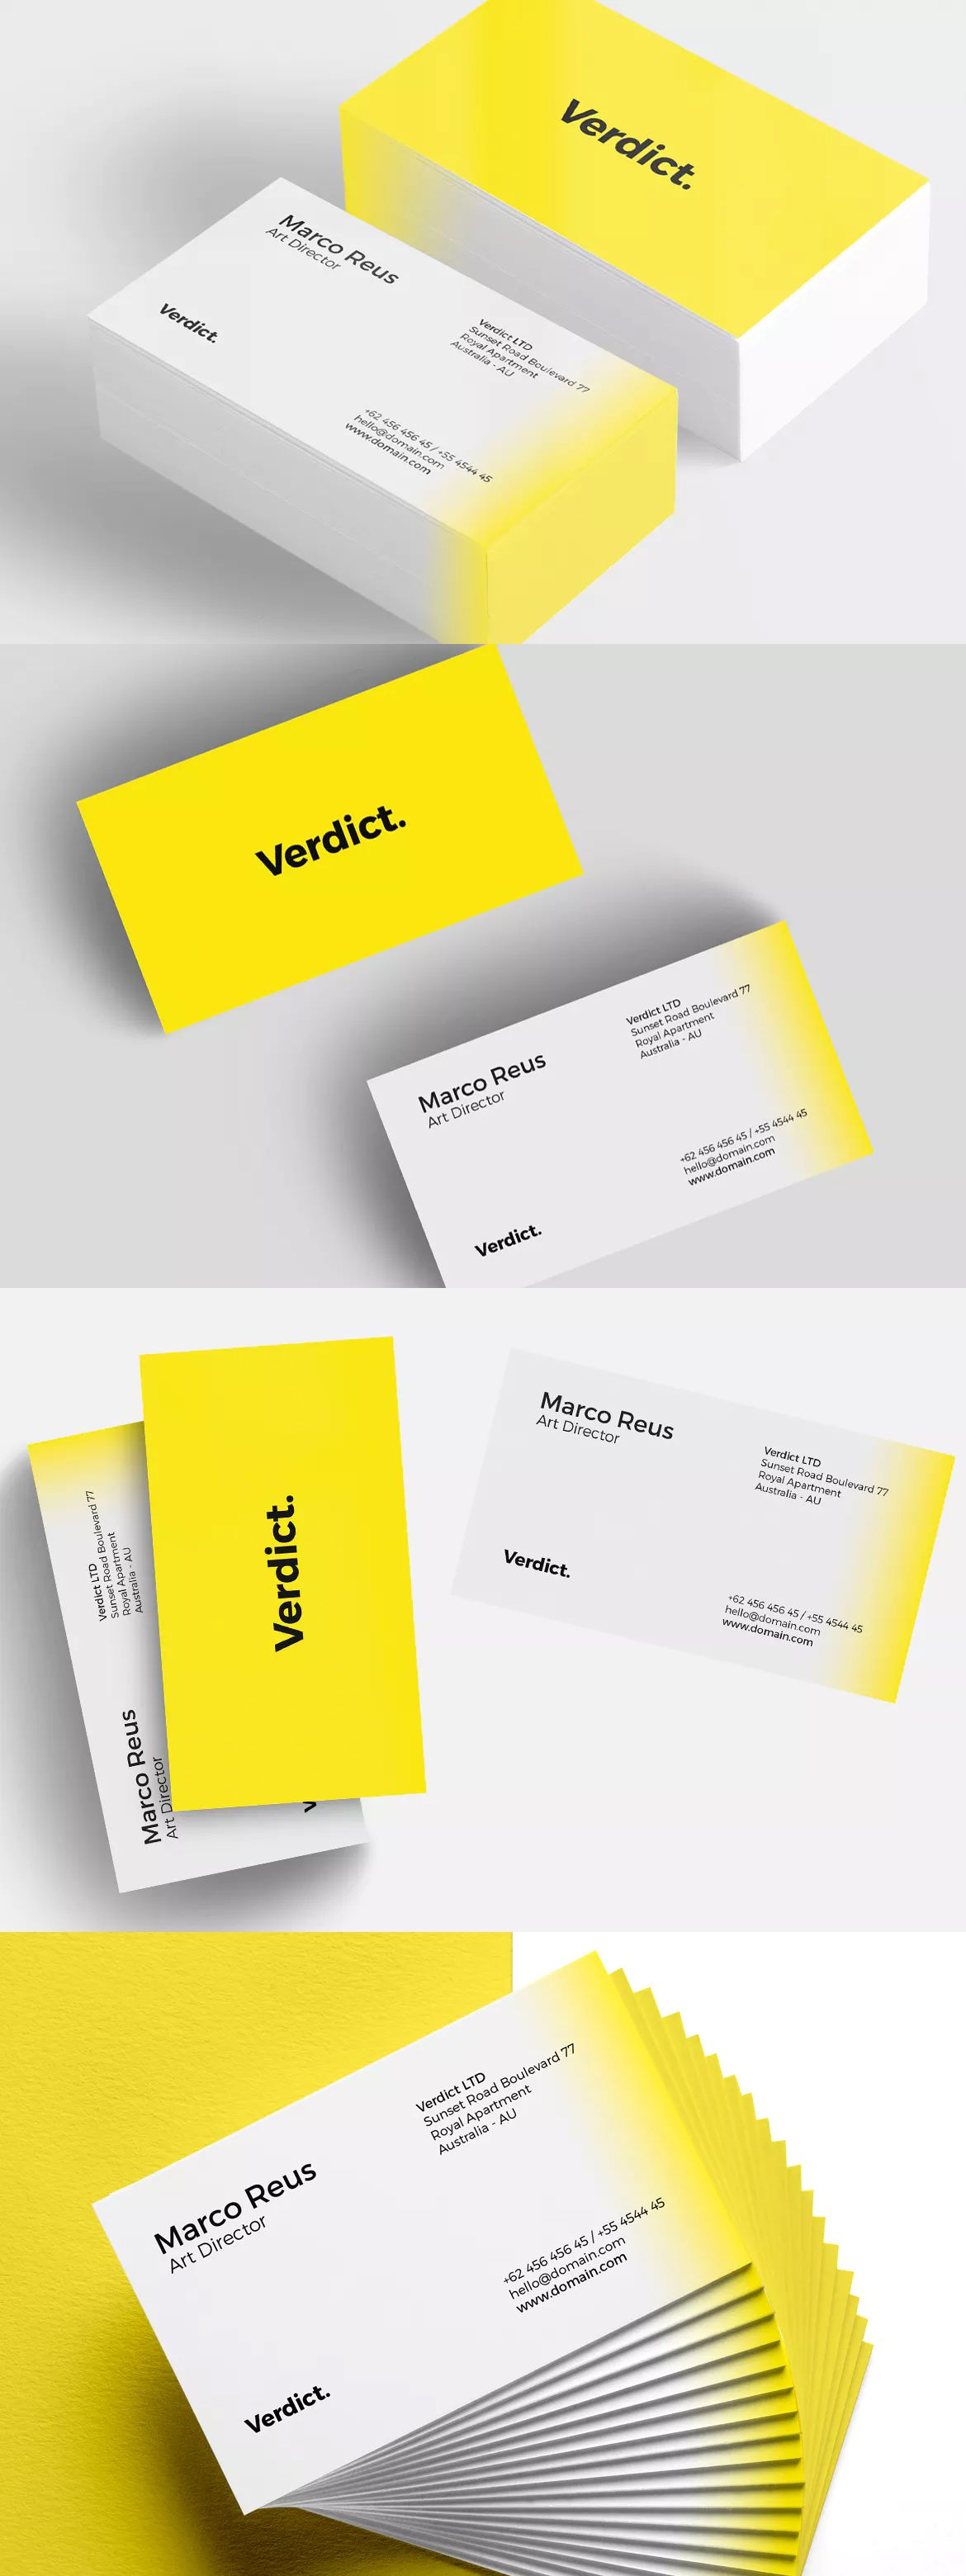 Minimal Business Card Template PSD | Business Card Tempaltes ...